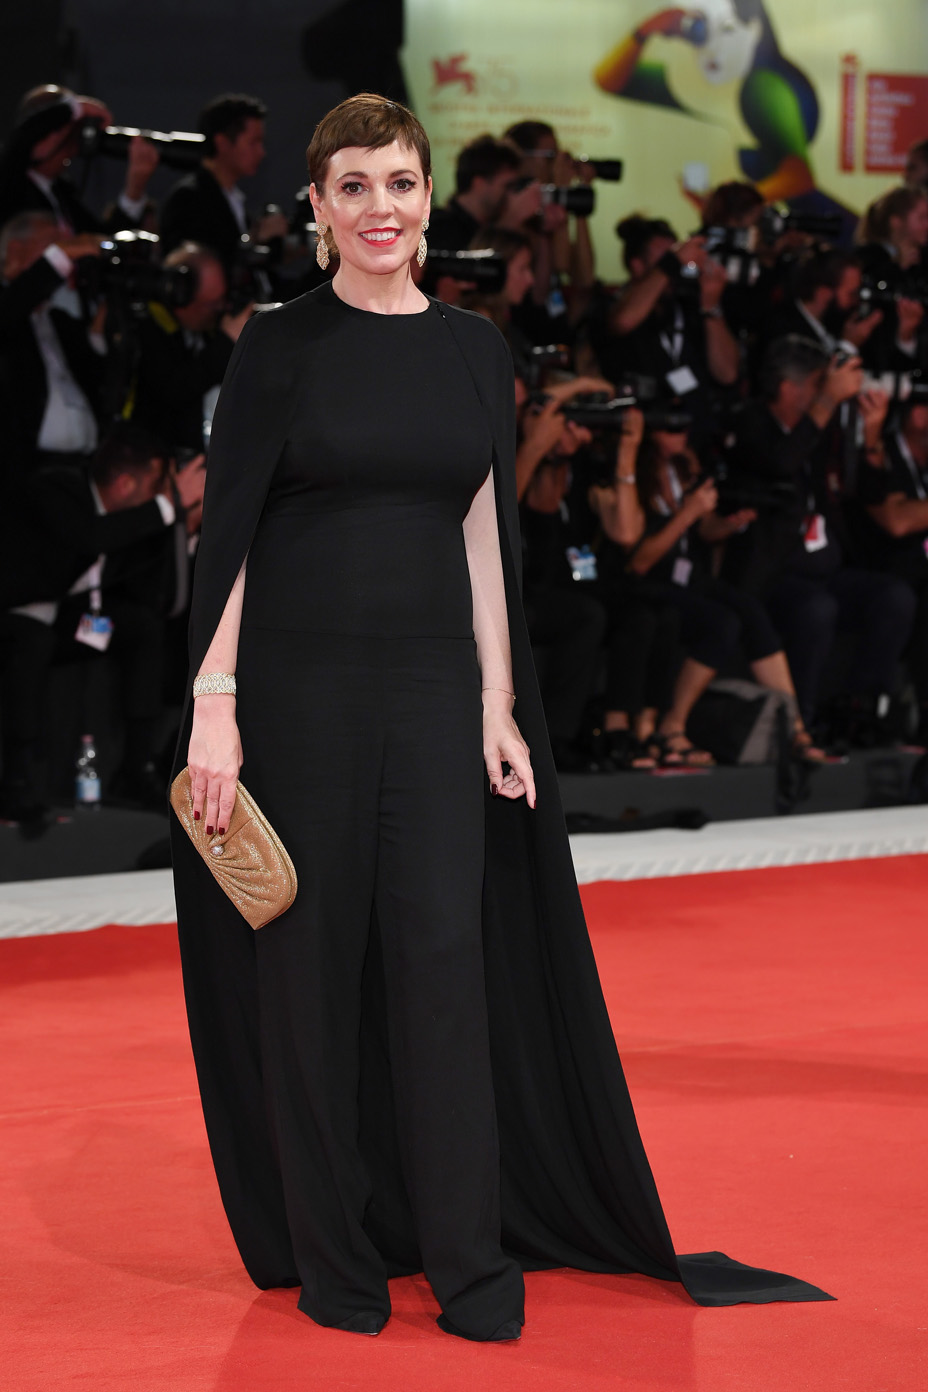 The Favourite Red Carpet Arrivals - 75th Venice Film Festival